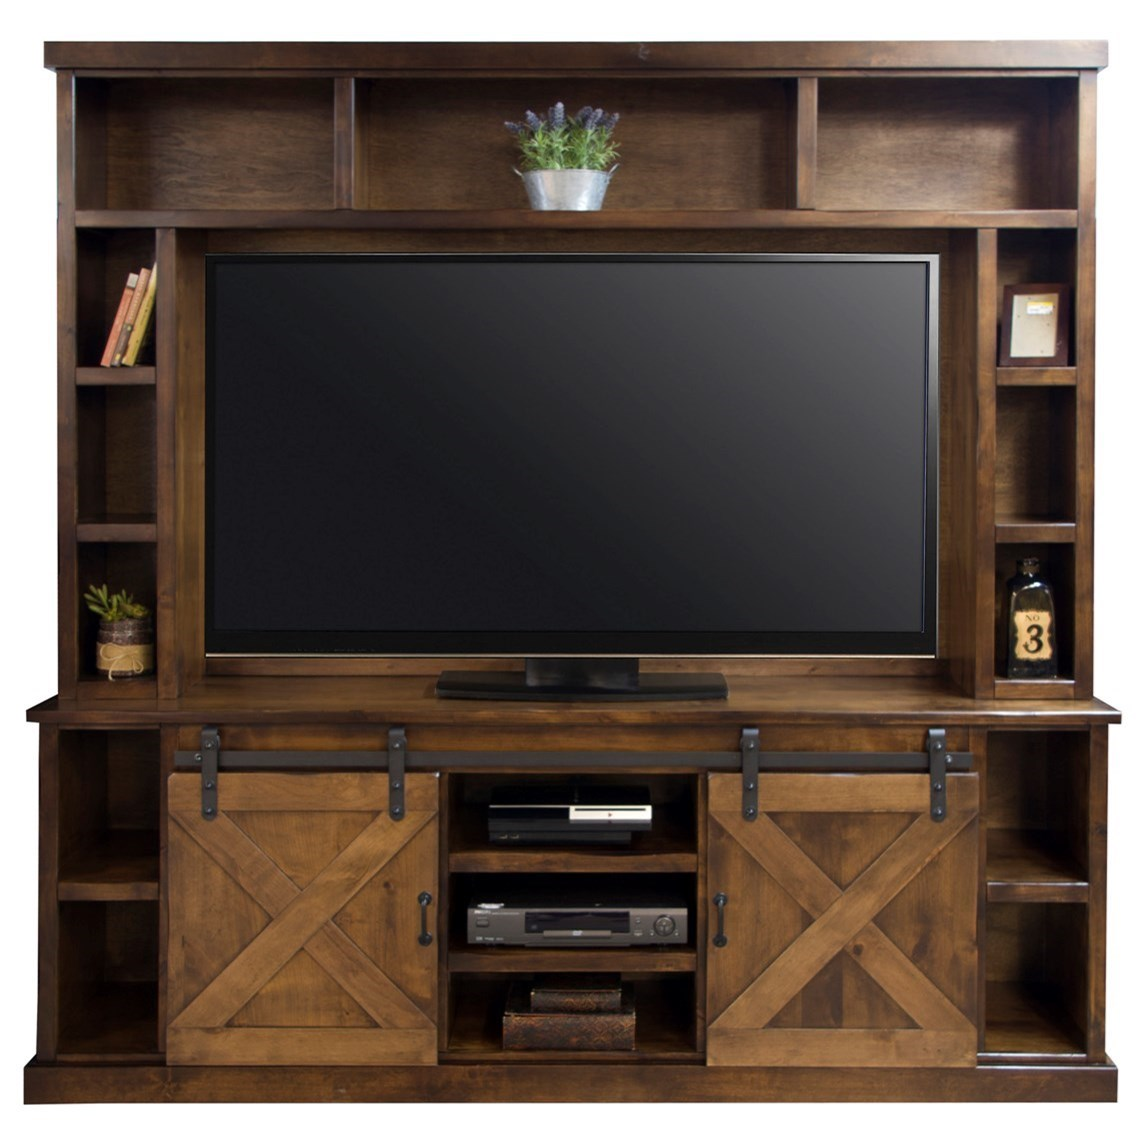 Legends Furniture Farmhouse Collection Entertainment Wall